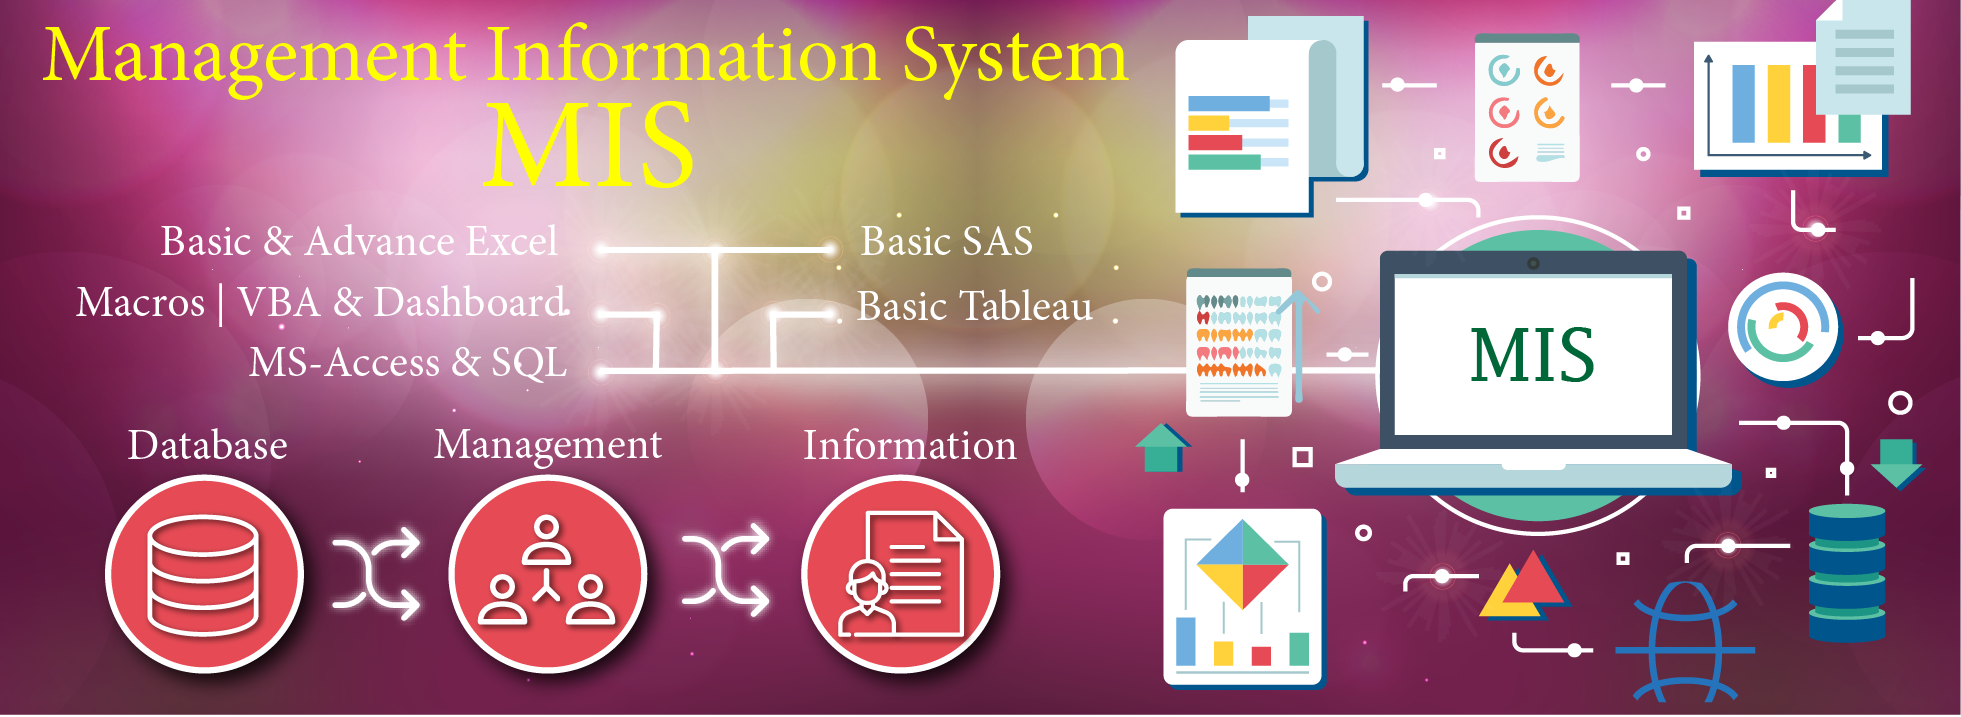 Attend Best MIS Training Course in Gurgaon-Classes-Other Classes-Gurgaon